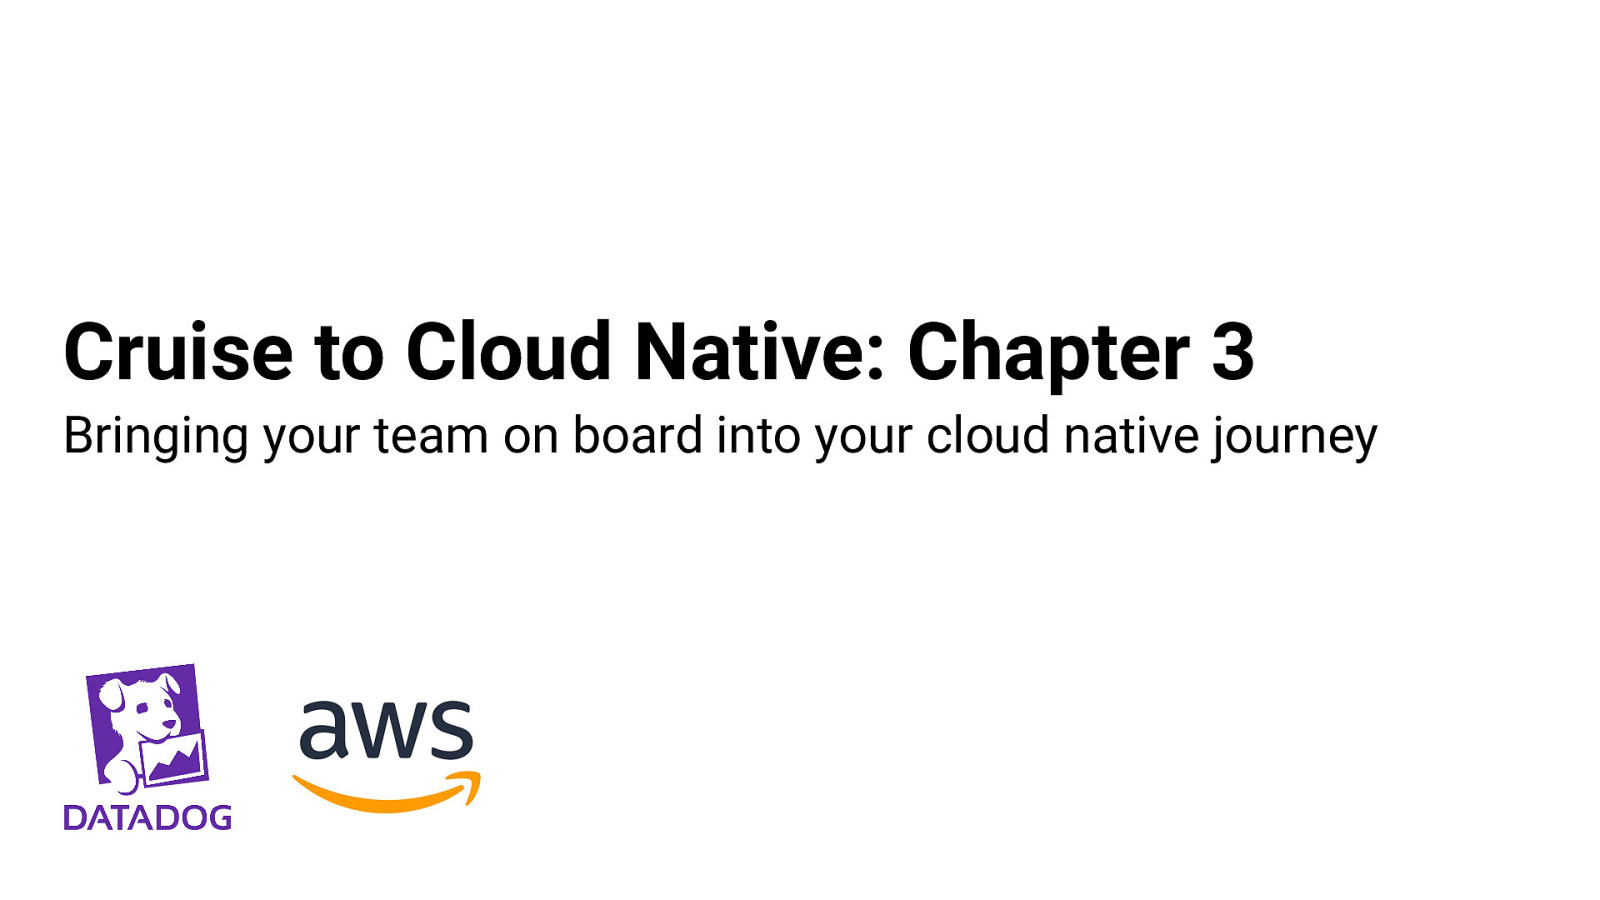 Cruise to Cloud Native: Chapter 3. All Aboard! Bringing Your Team on Board Into Your Cloud Native Journey.